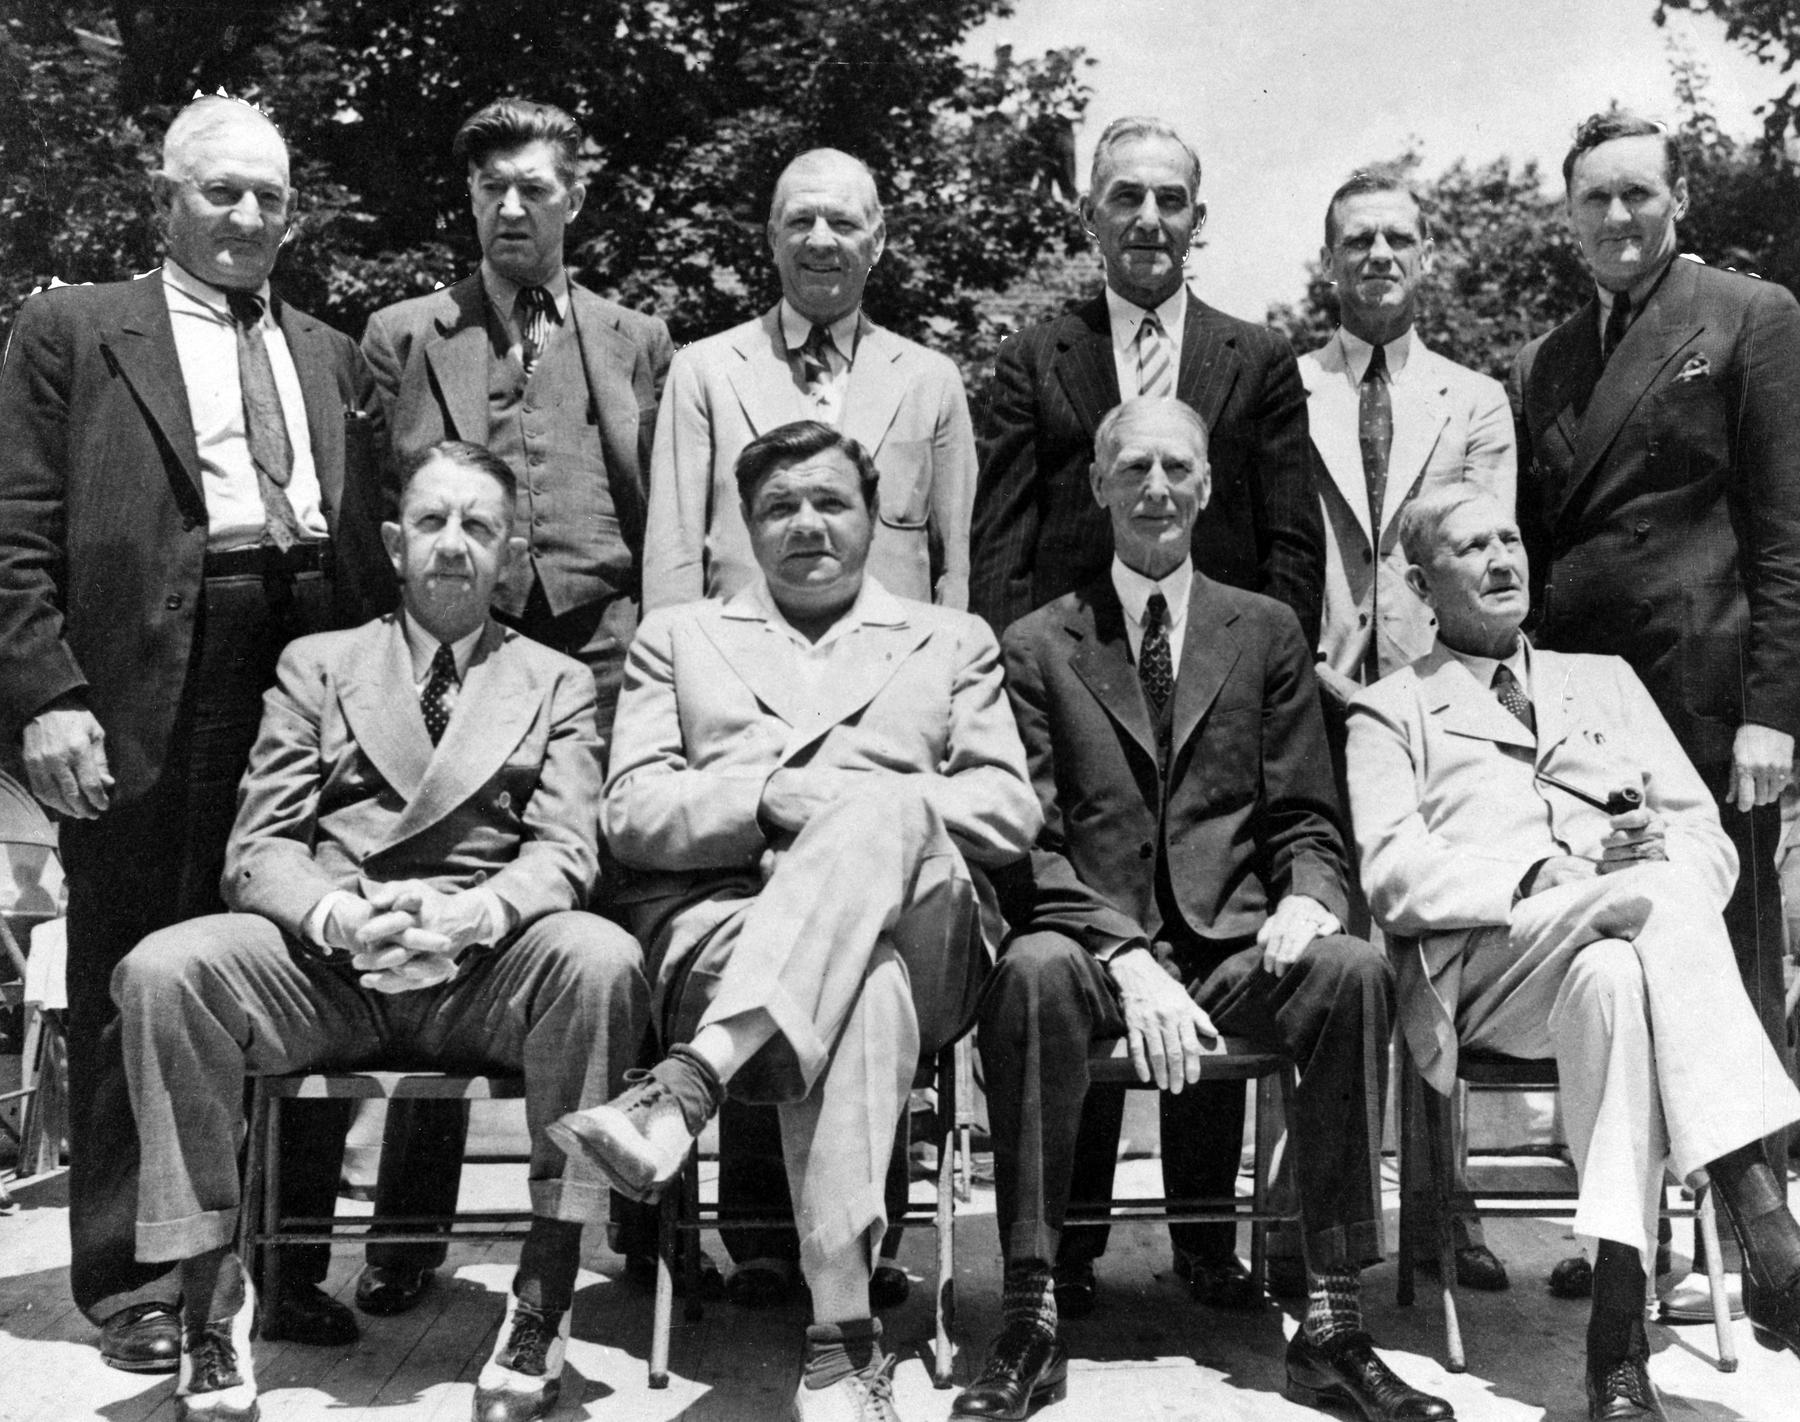 All of the Hall of Fame's living members (except Ty Cobb) sit for a photograph on June 12, 1939 in Cooperstown - BL-4253-89 (National Baseball Hall of Fame Library)